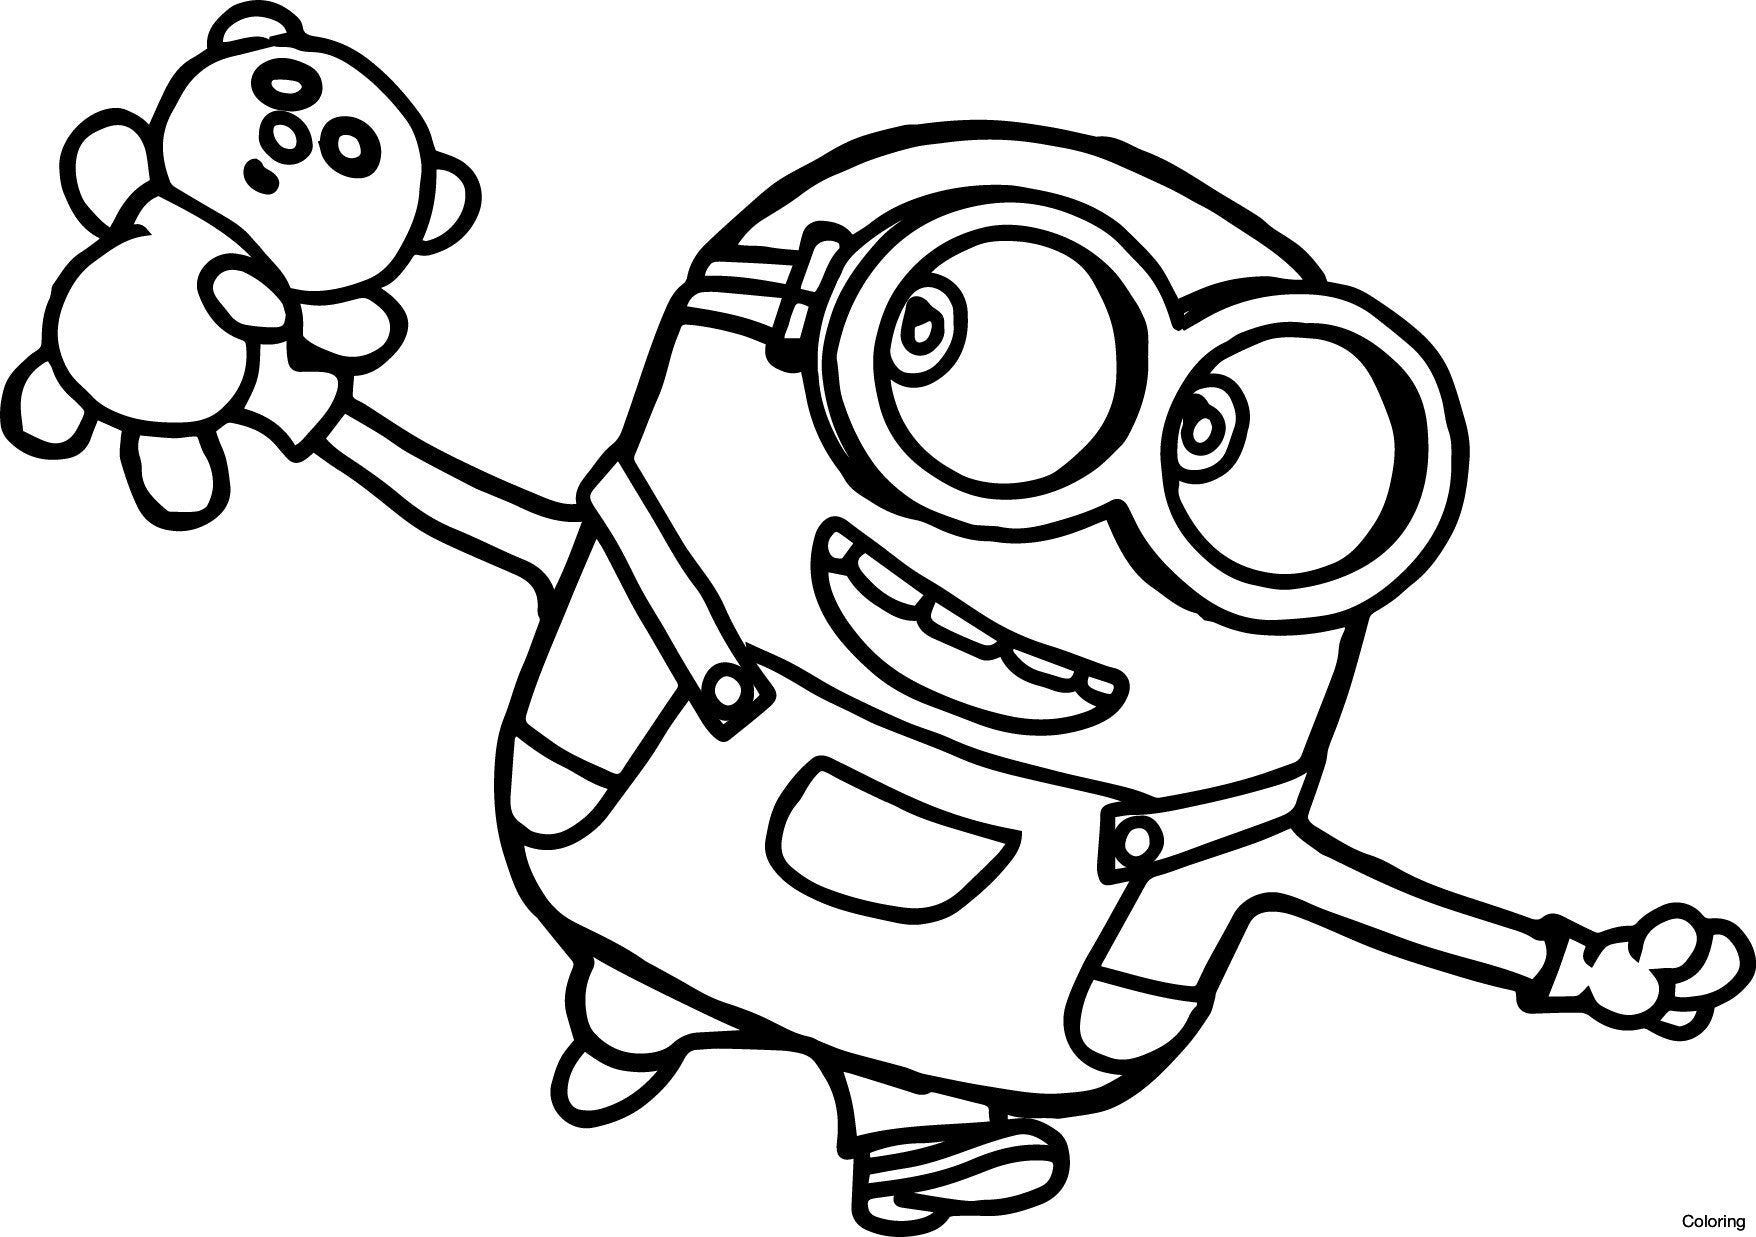 Free Printable Minion Coloring Pages at GetDrawings.com ...